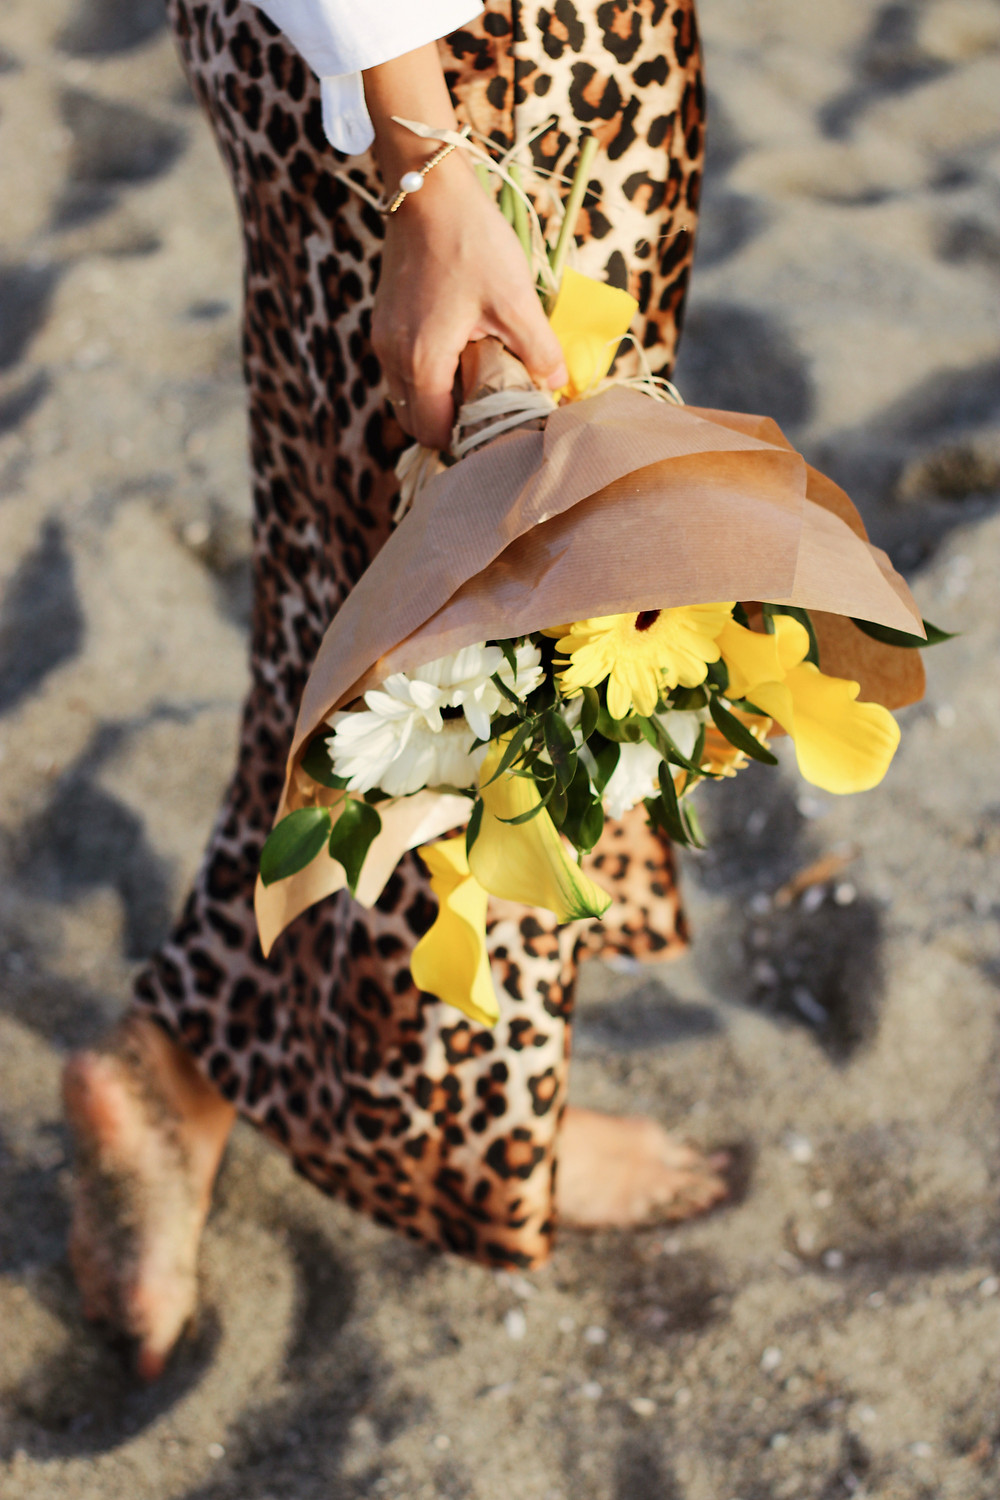 lower body of a woman wearing animal print skirt with bare feet walking in the sand with a bouquet of flowers in her hand